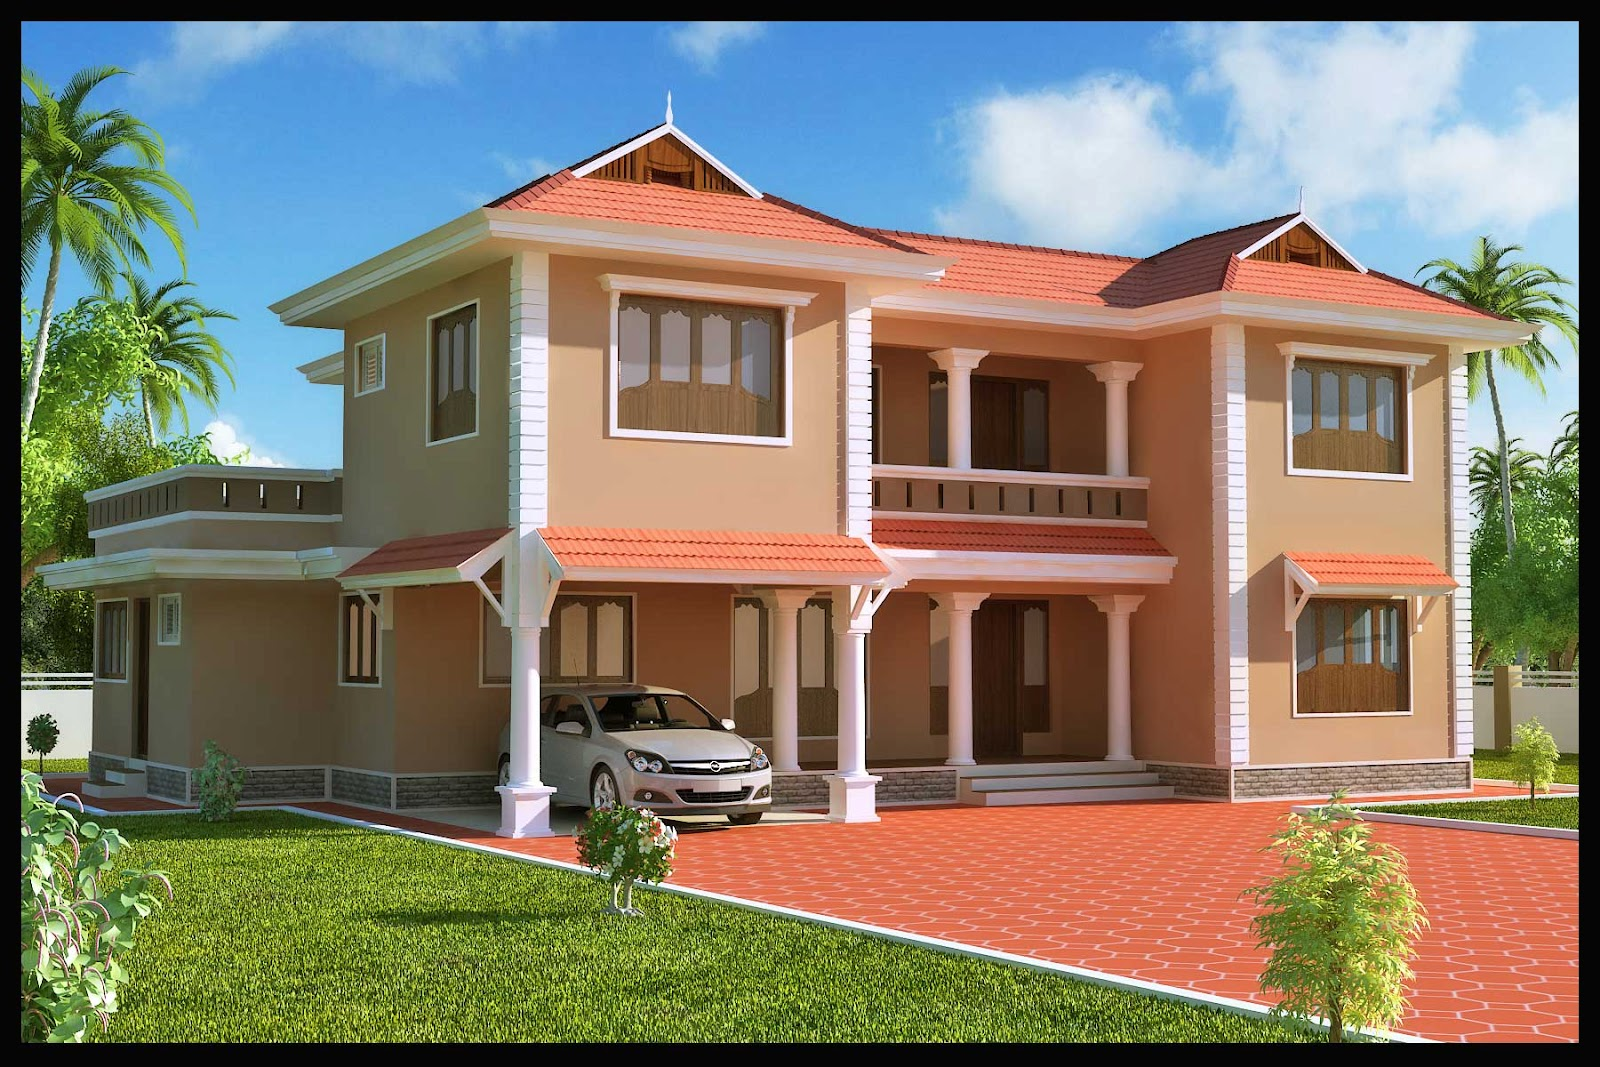 Kerala building construction 4 bhk villa for Exterior design of building